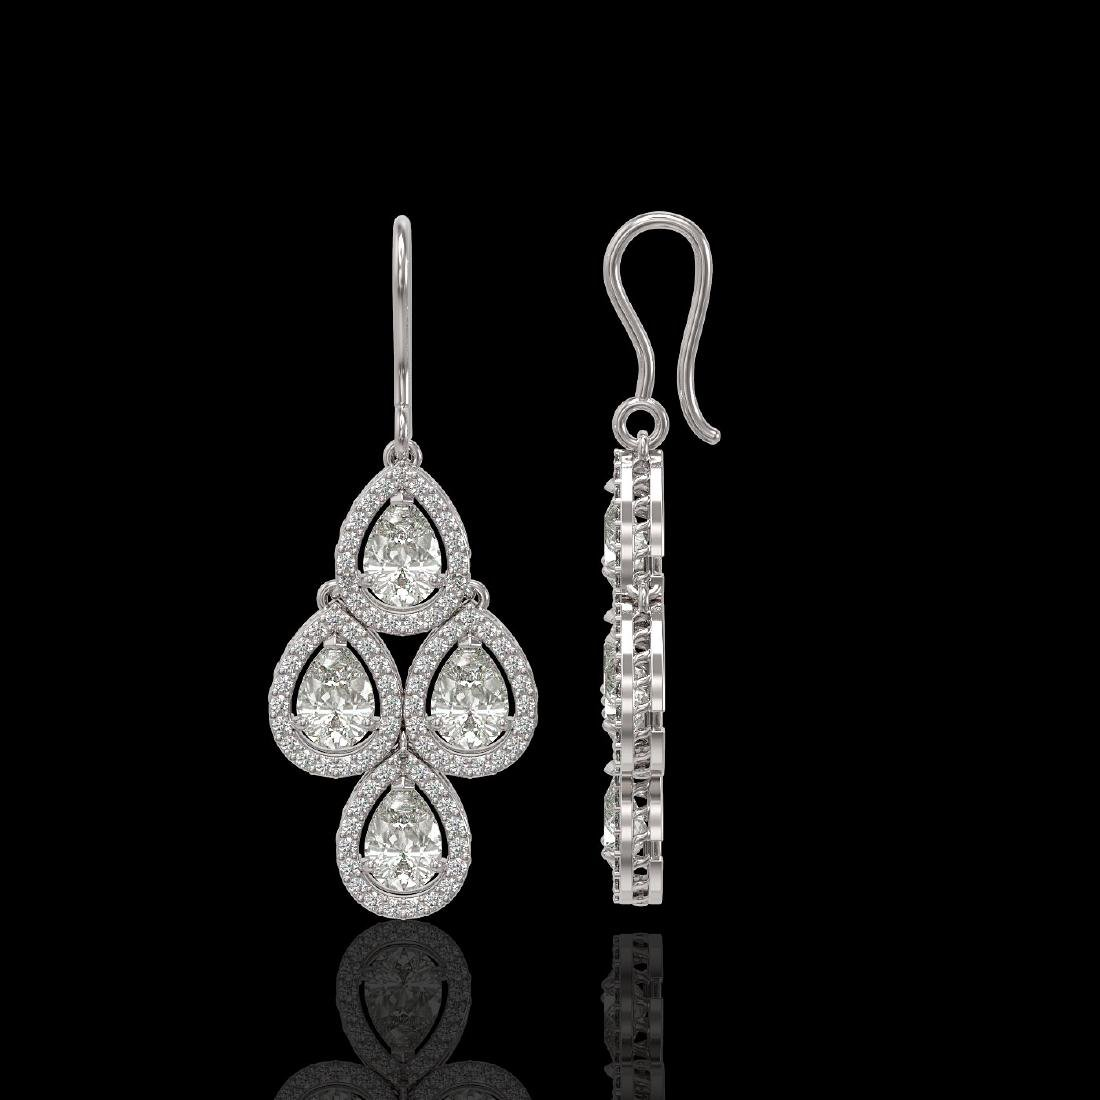 5.22 CTW Pear Diamond Designer Earrings 18K White Gold - 2